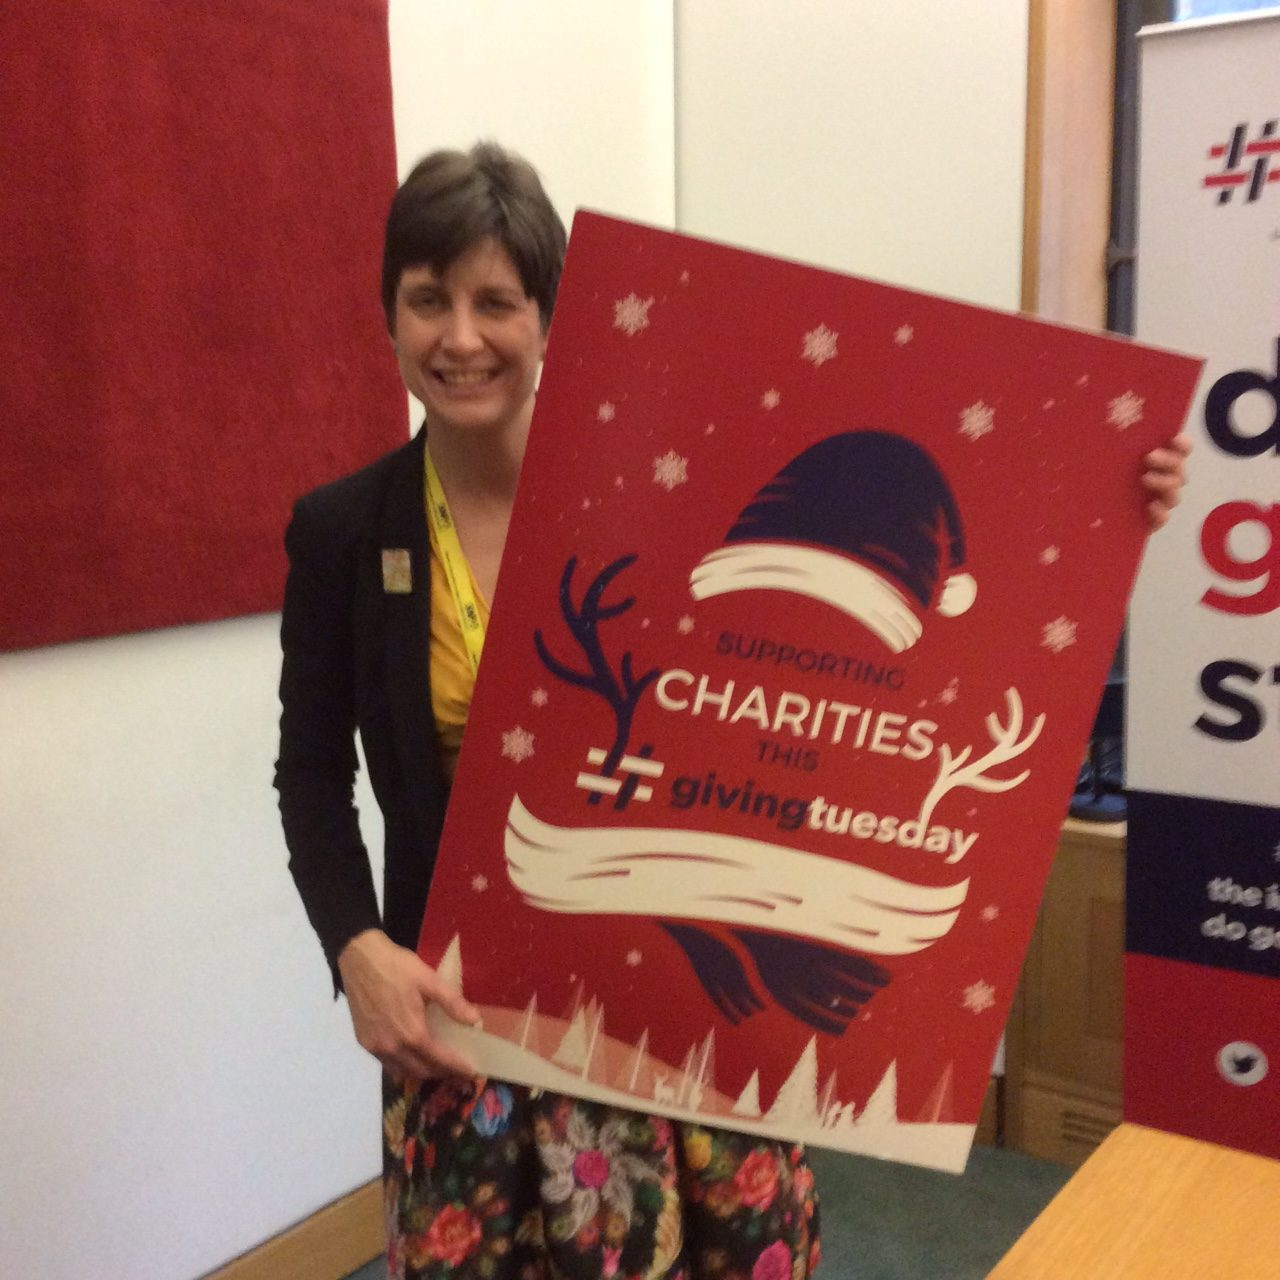 Alison Thewliss MP joins charities and businesses to support #givingtuesday